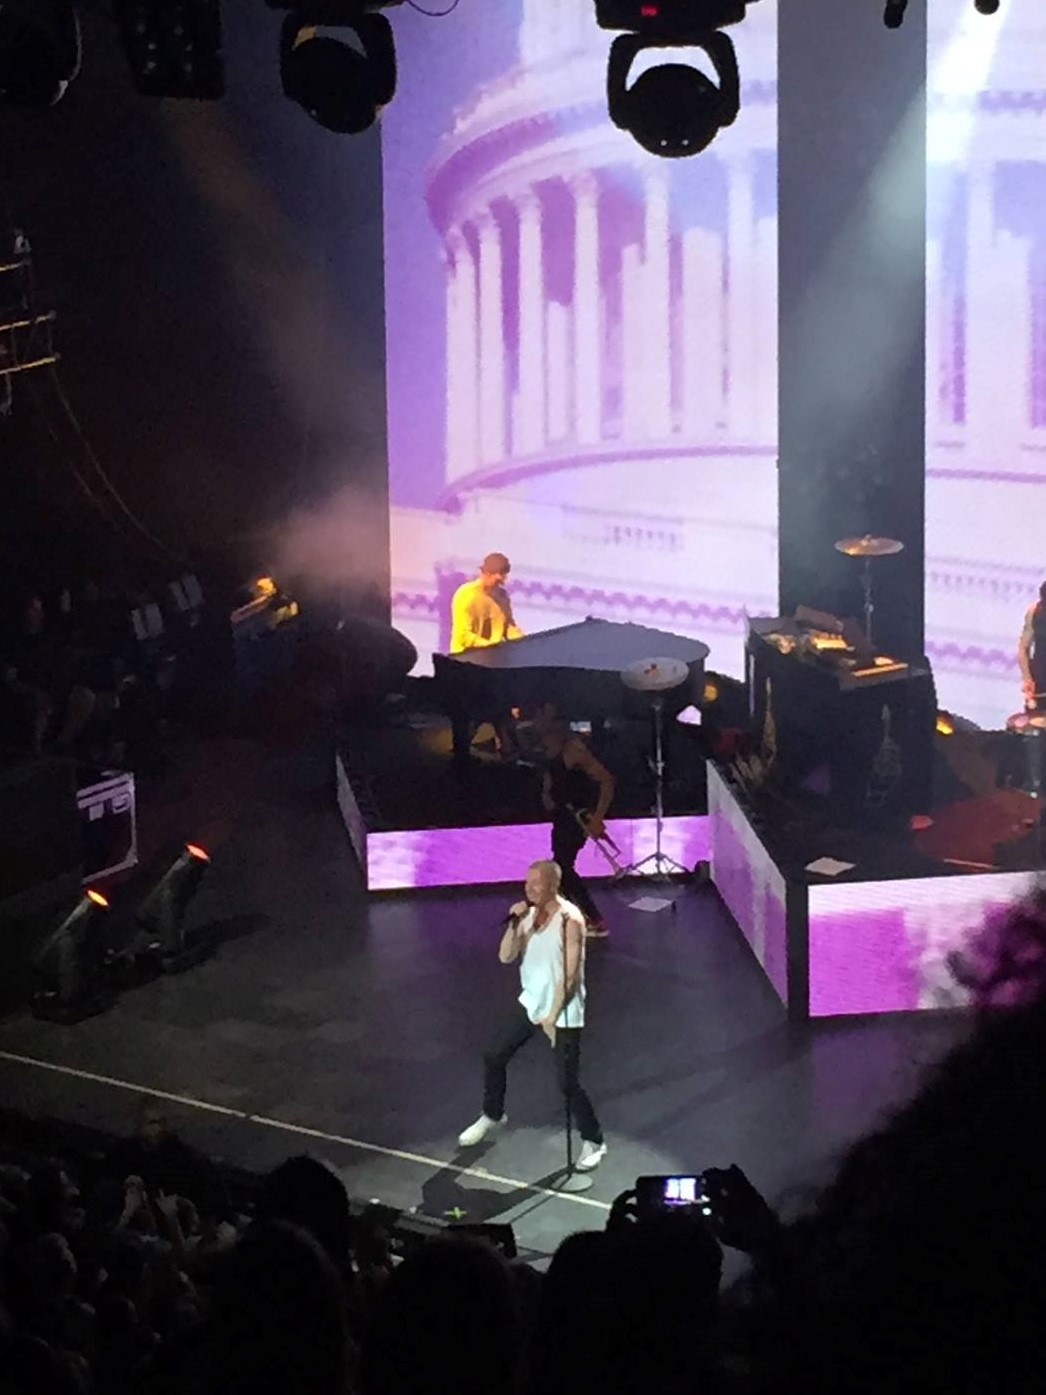 Macklemore preforms live at the Riviera Theatre in Chicago, IL.